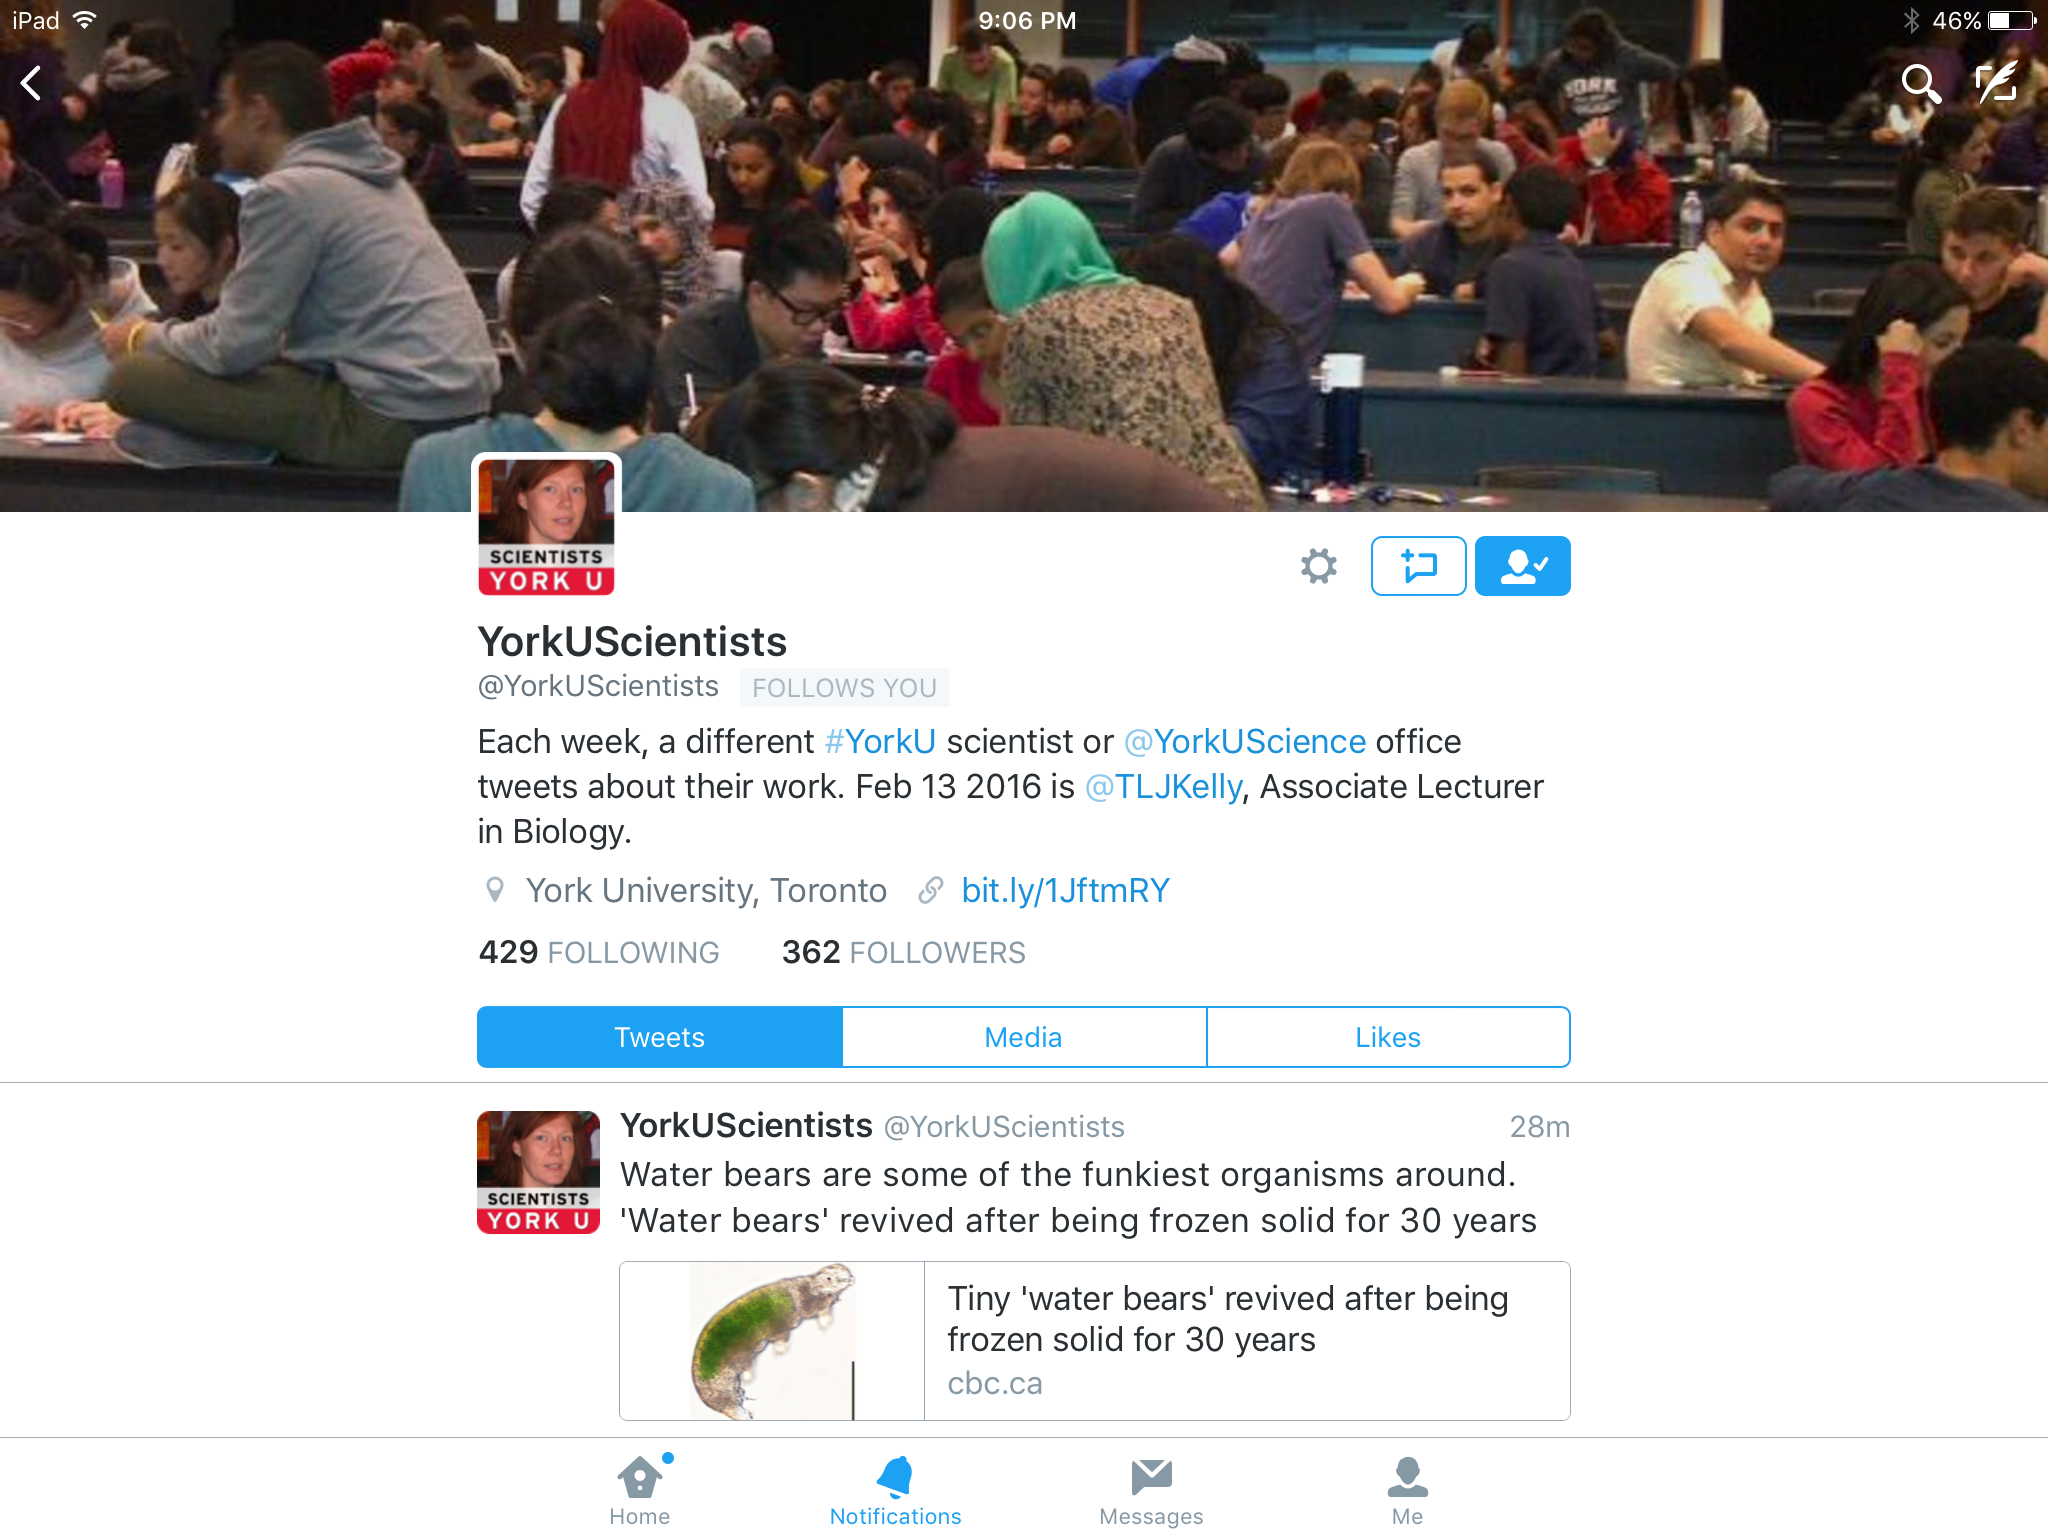 Professor Tamara Kelly's avatar and header photo of students, used for her @YorkUScientists week.